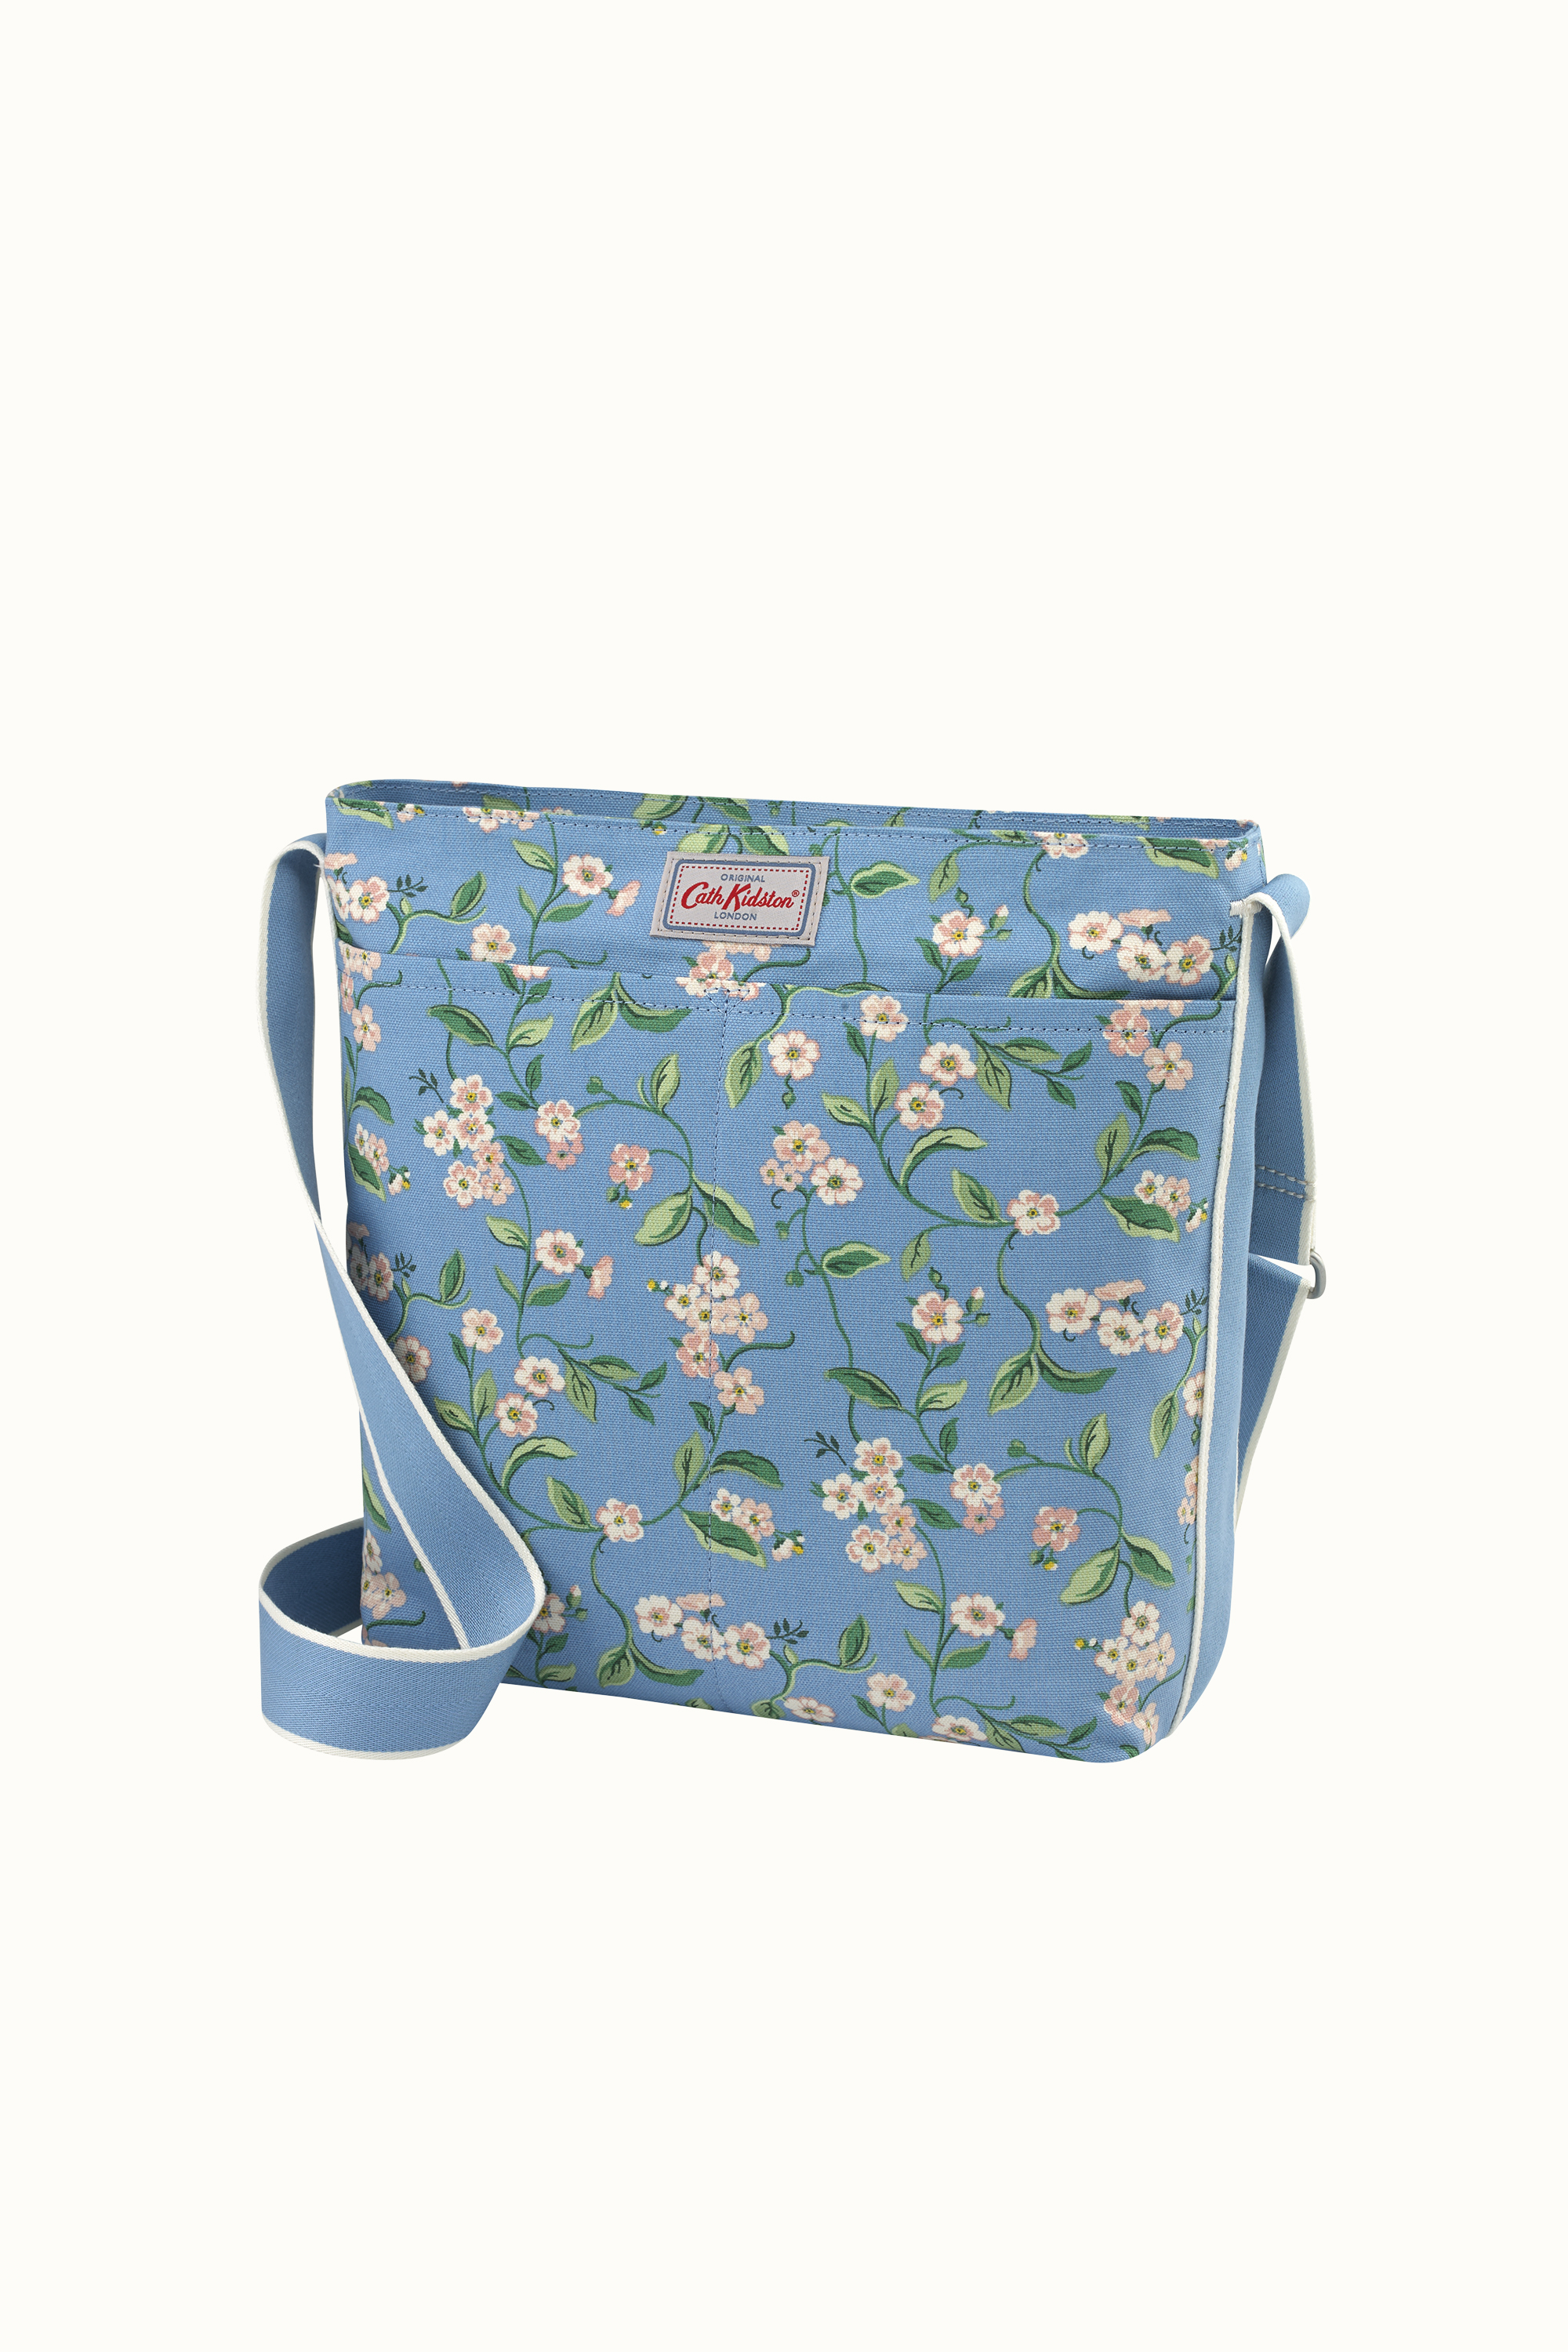 Cath Kidston Forget Me Not Zipped Messenger Bag in Mid Blue